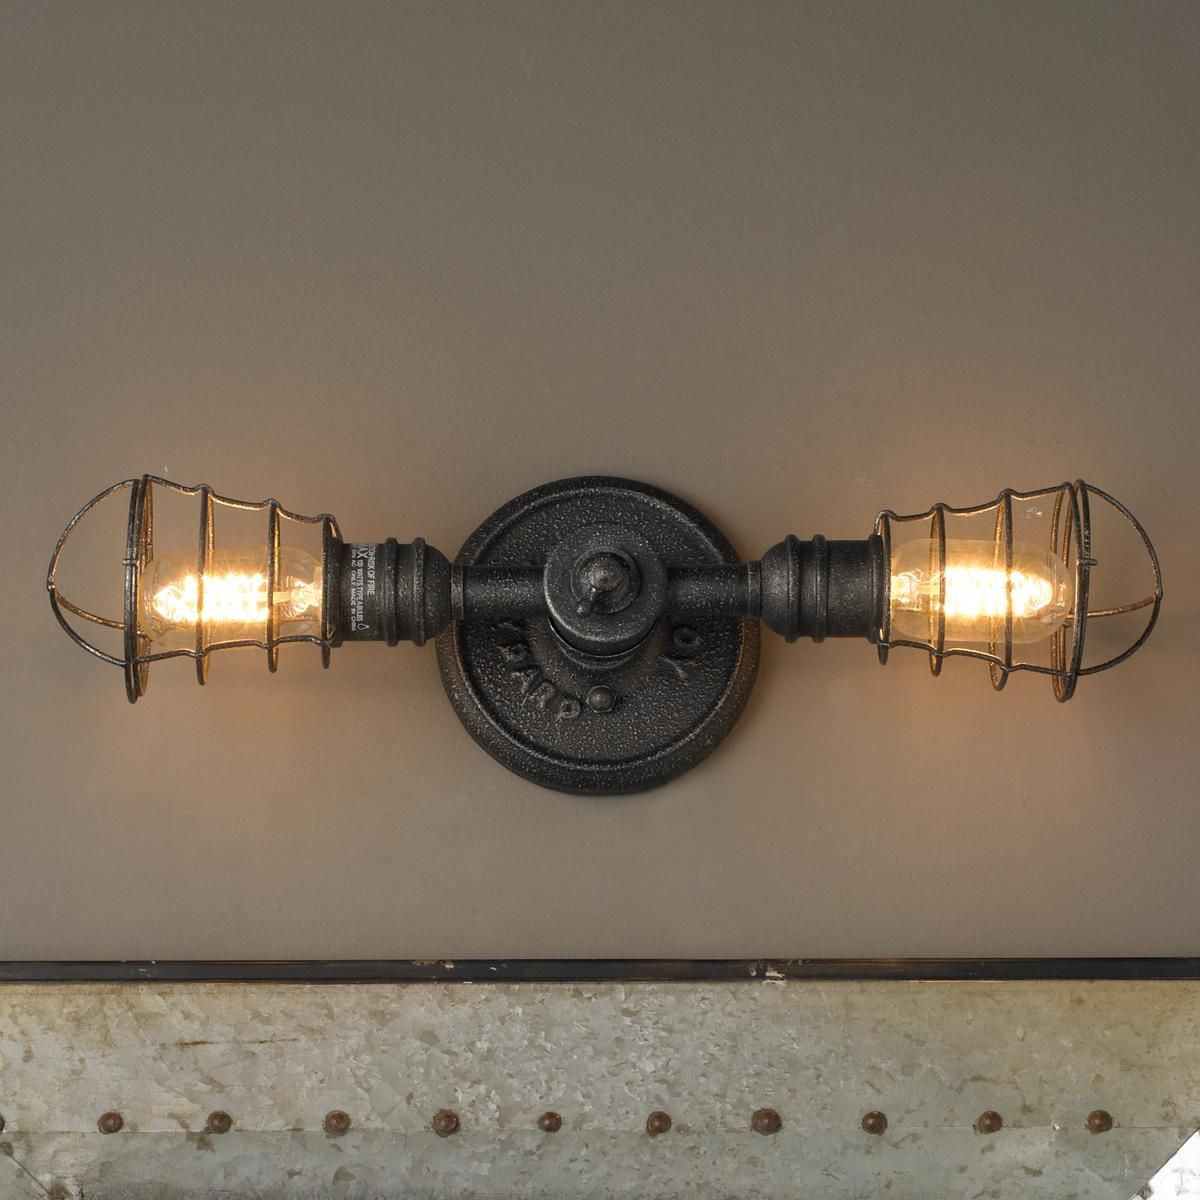 wall fixtures fixture house industrial light cage vanity bronze metal design rustic bathroom pin